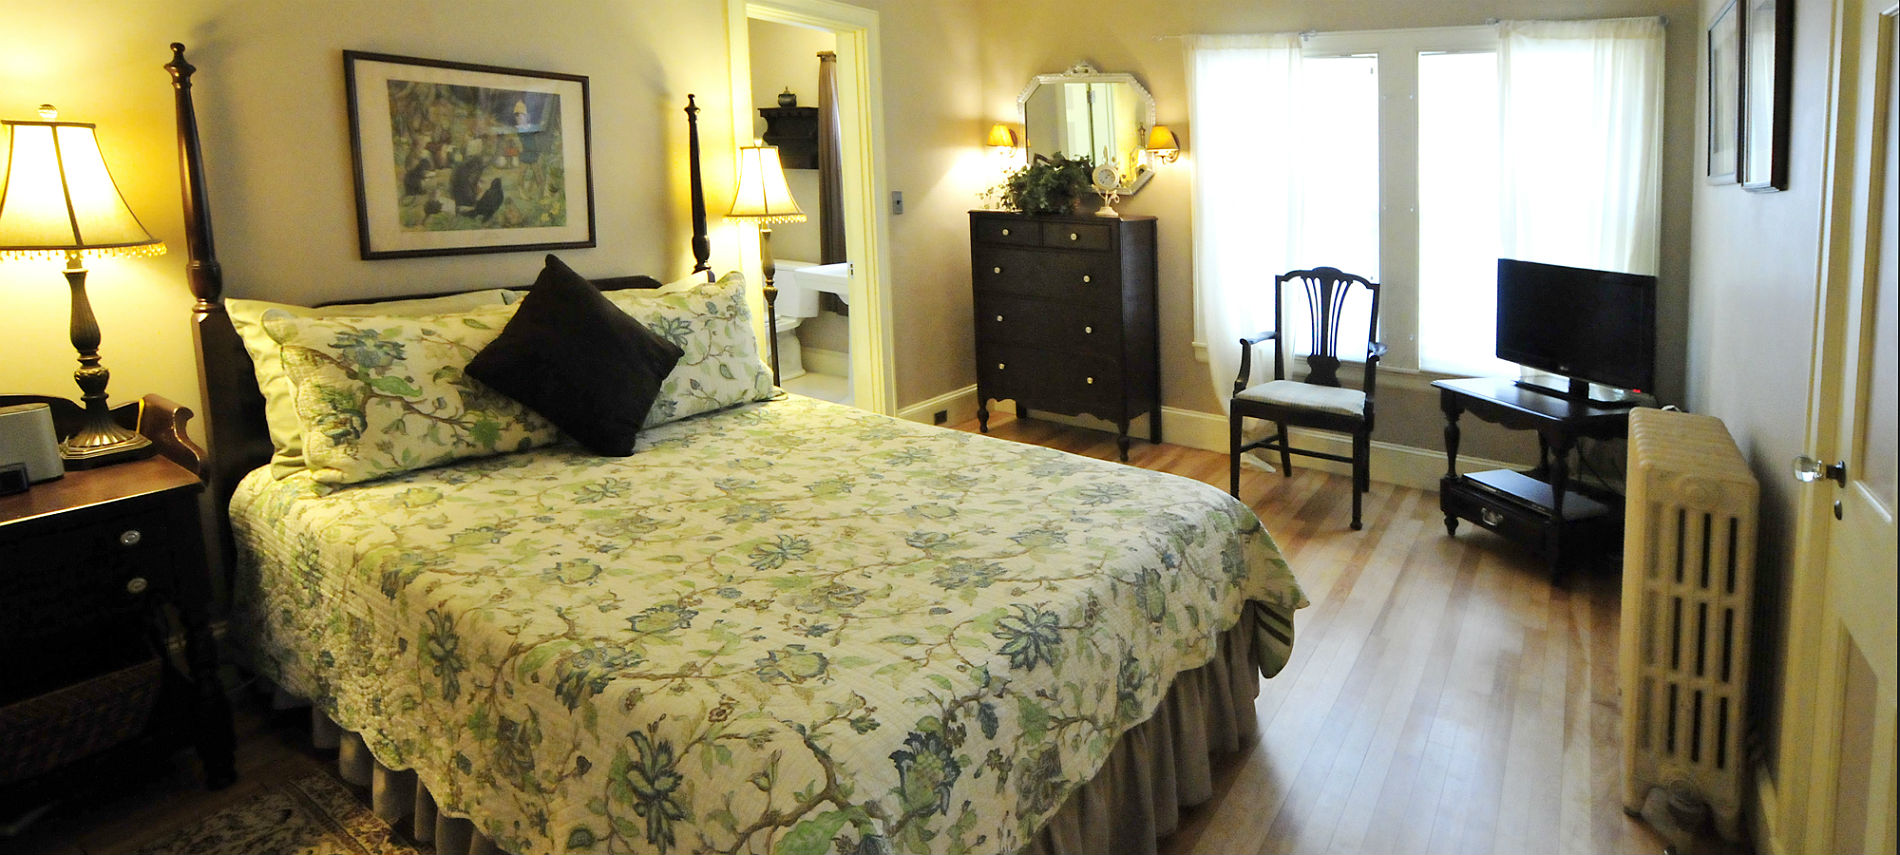 Bedroom with wood floors and dark wooden furniture featuring a large bed with a blue floral quilt.